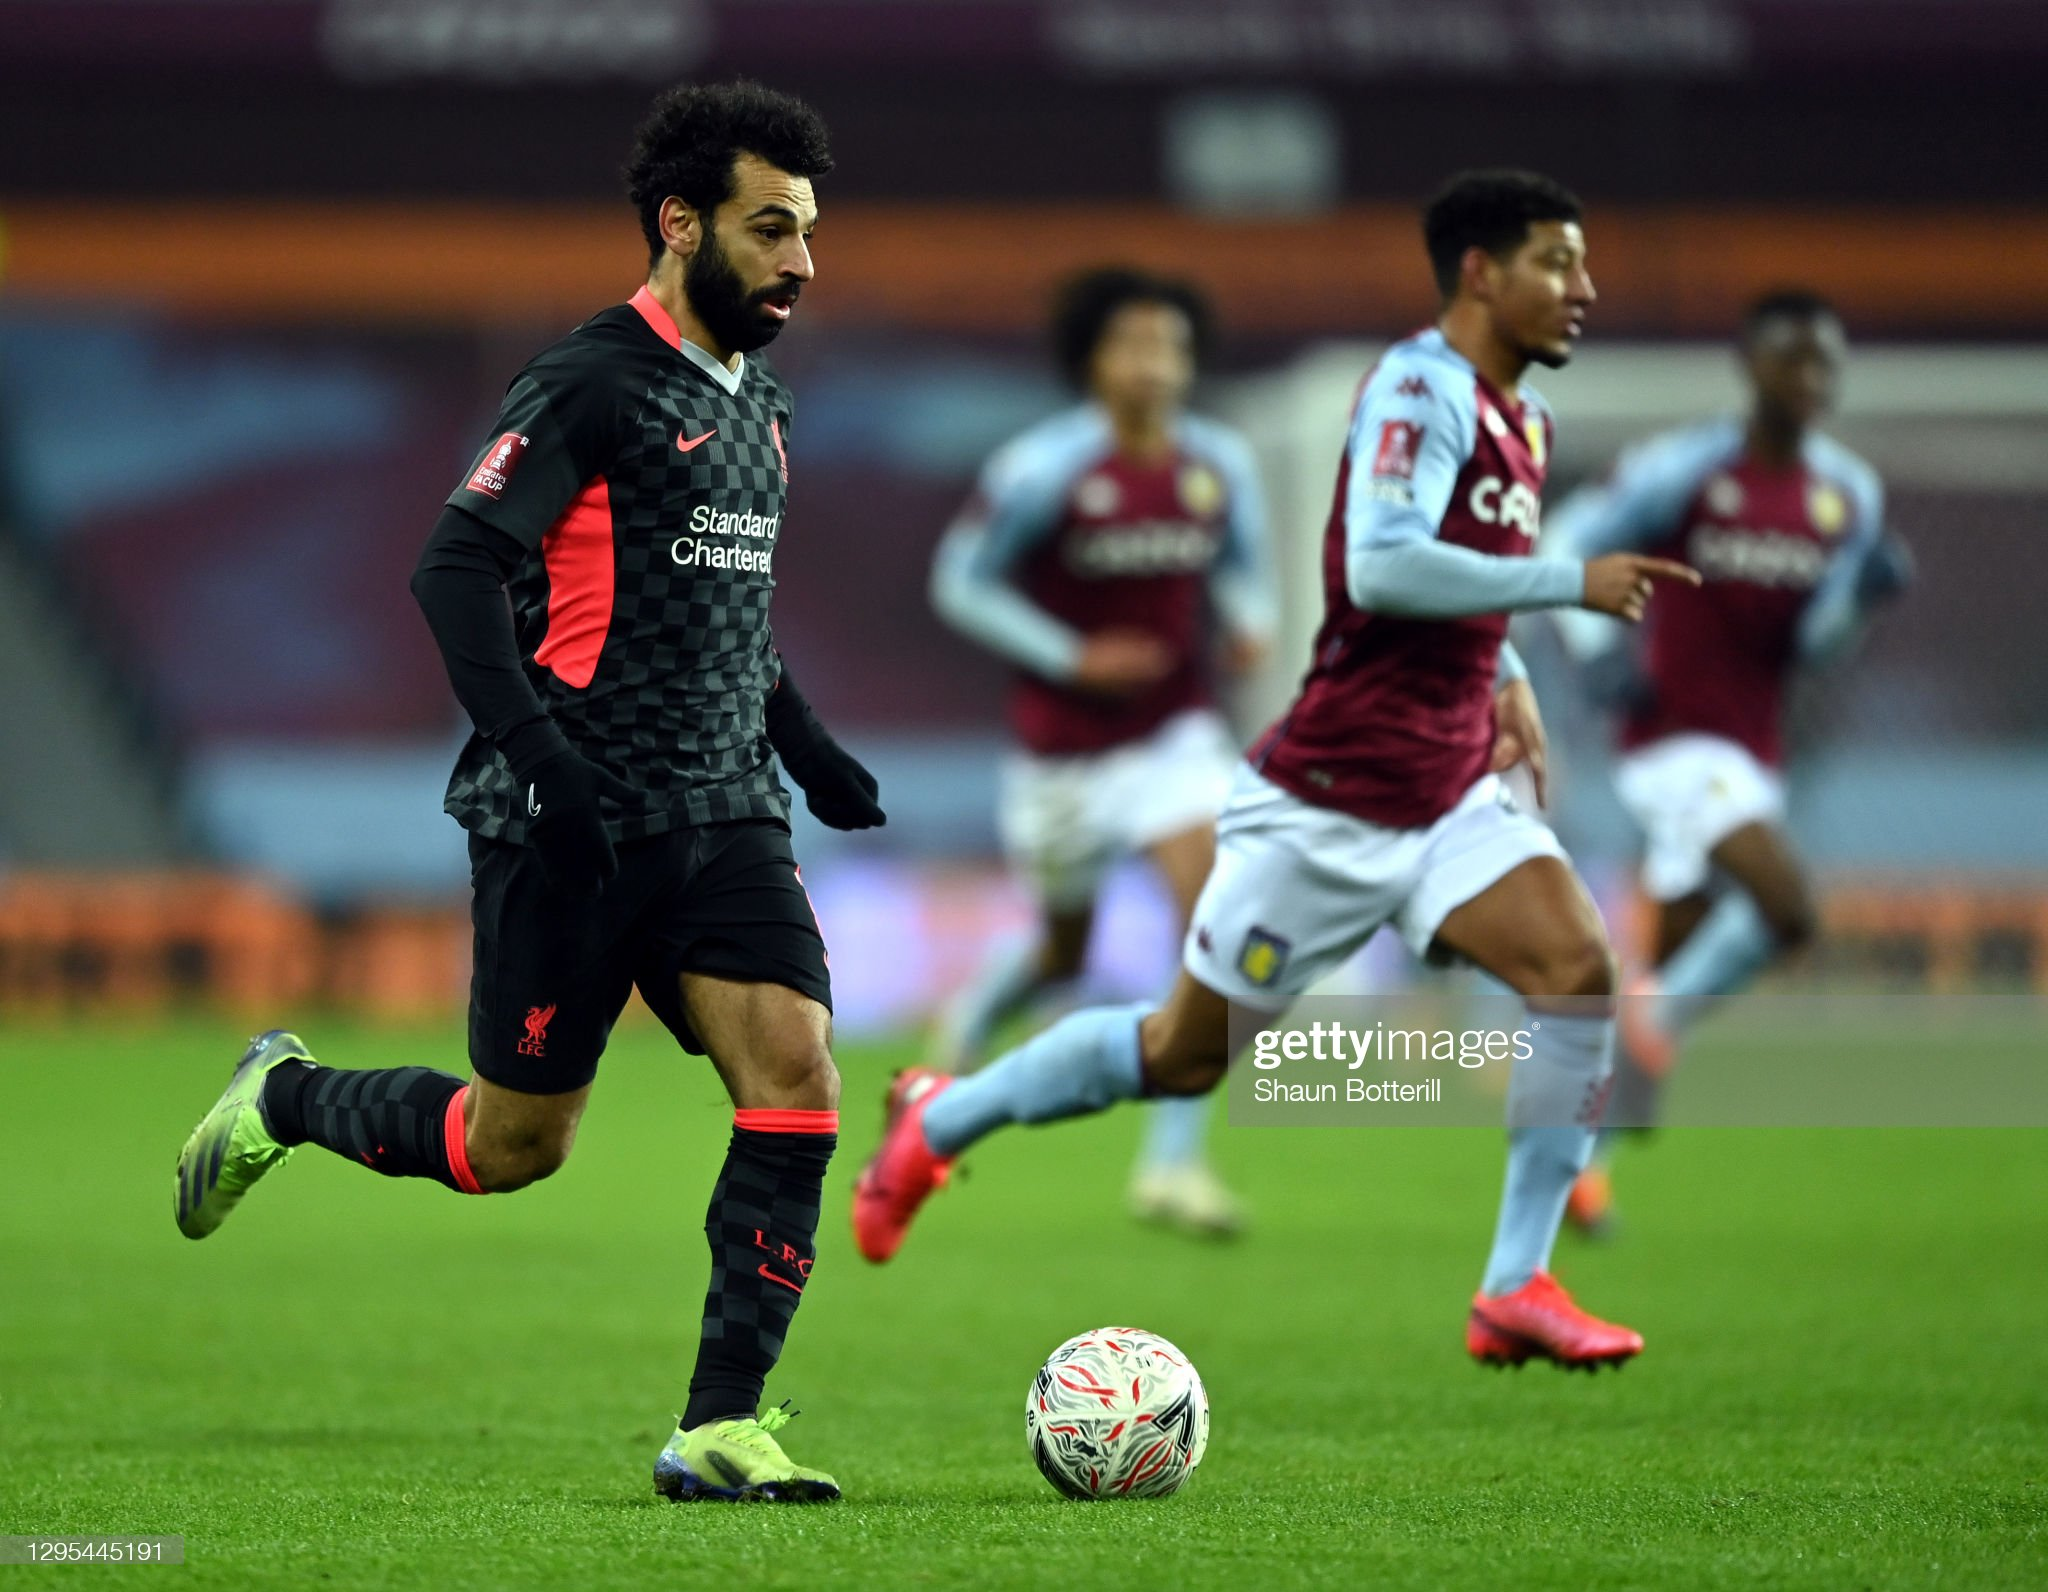 Liverpool vs Aston Villa Preview, prediction and odds